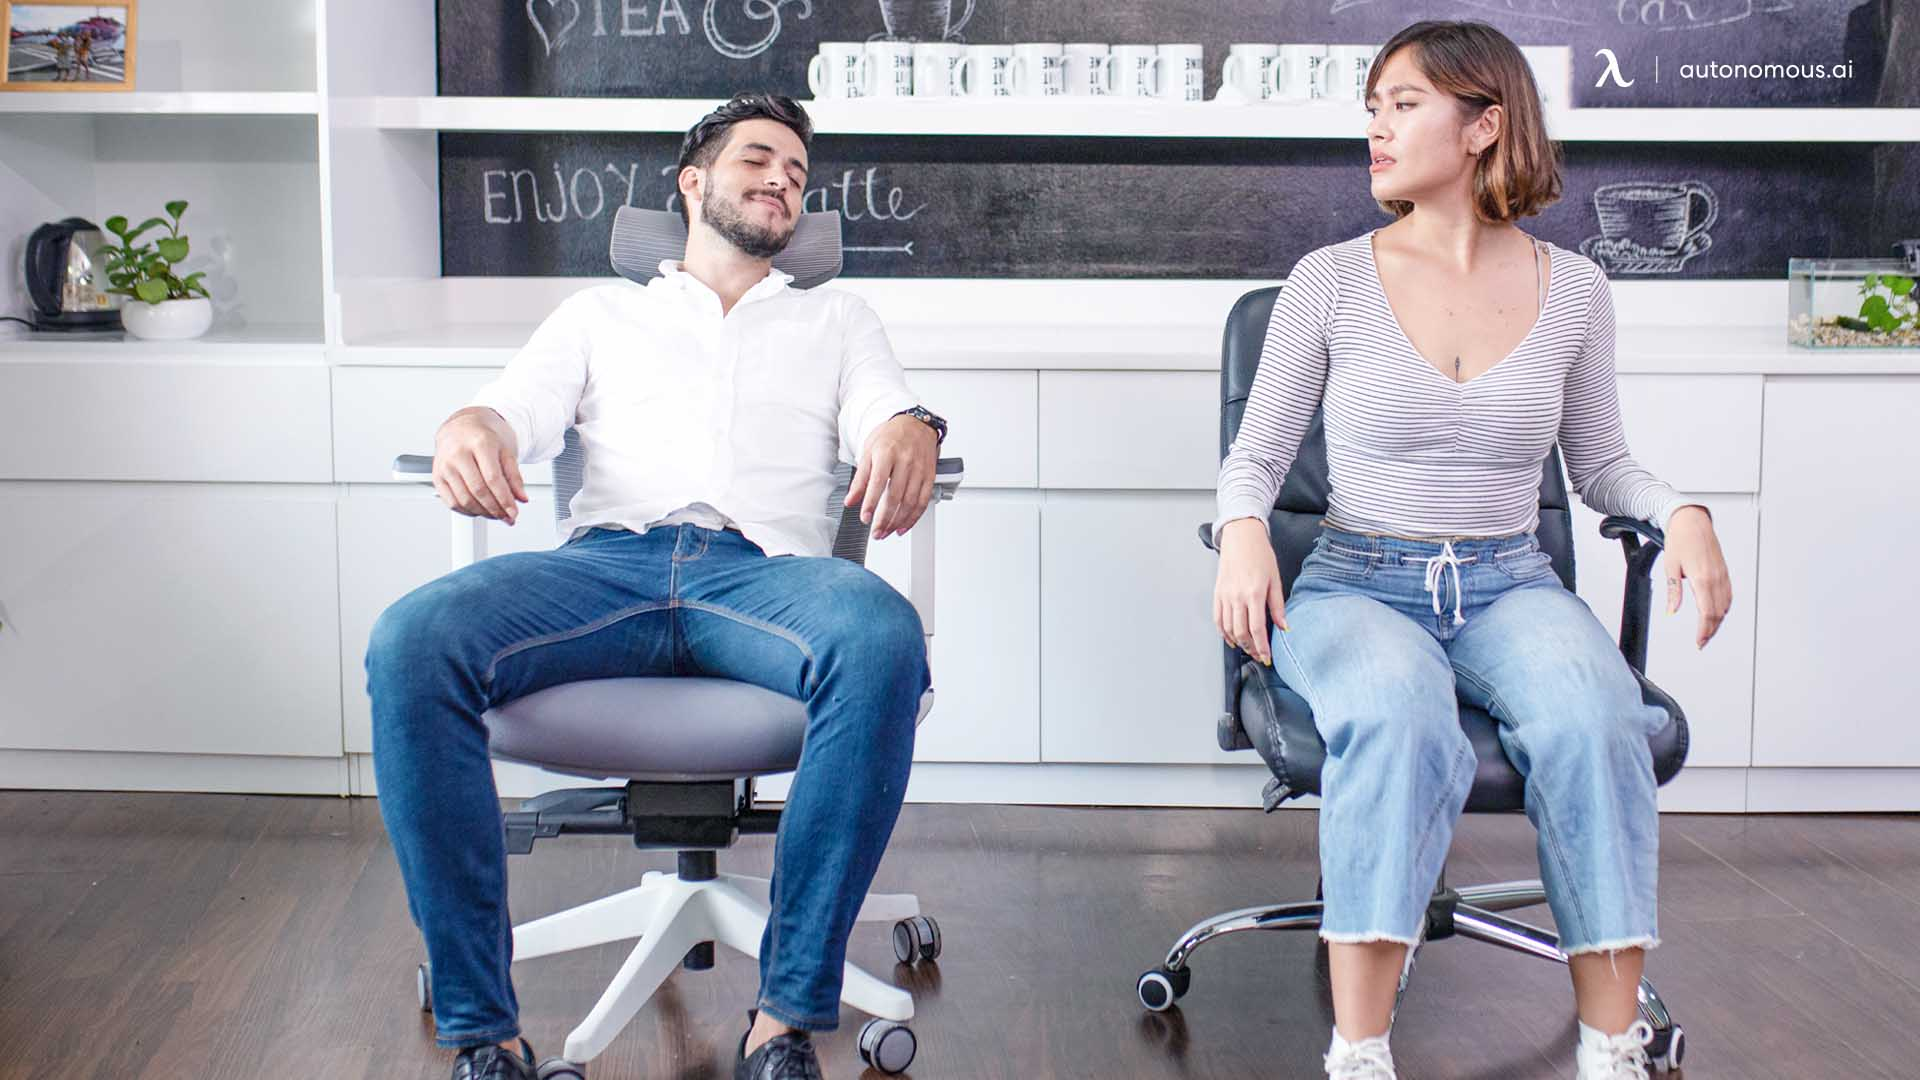 What Are the Benefits of Ergonomic Furniture?